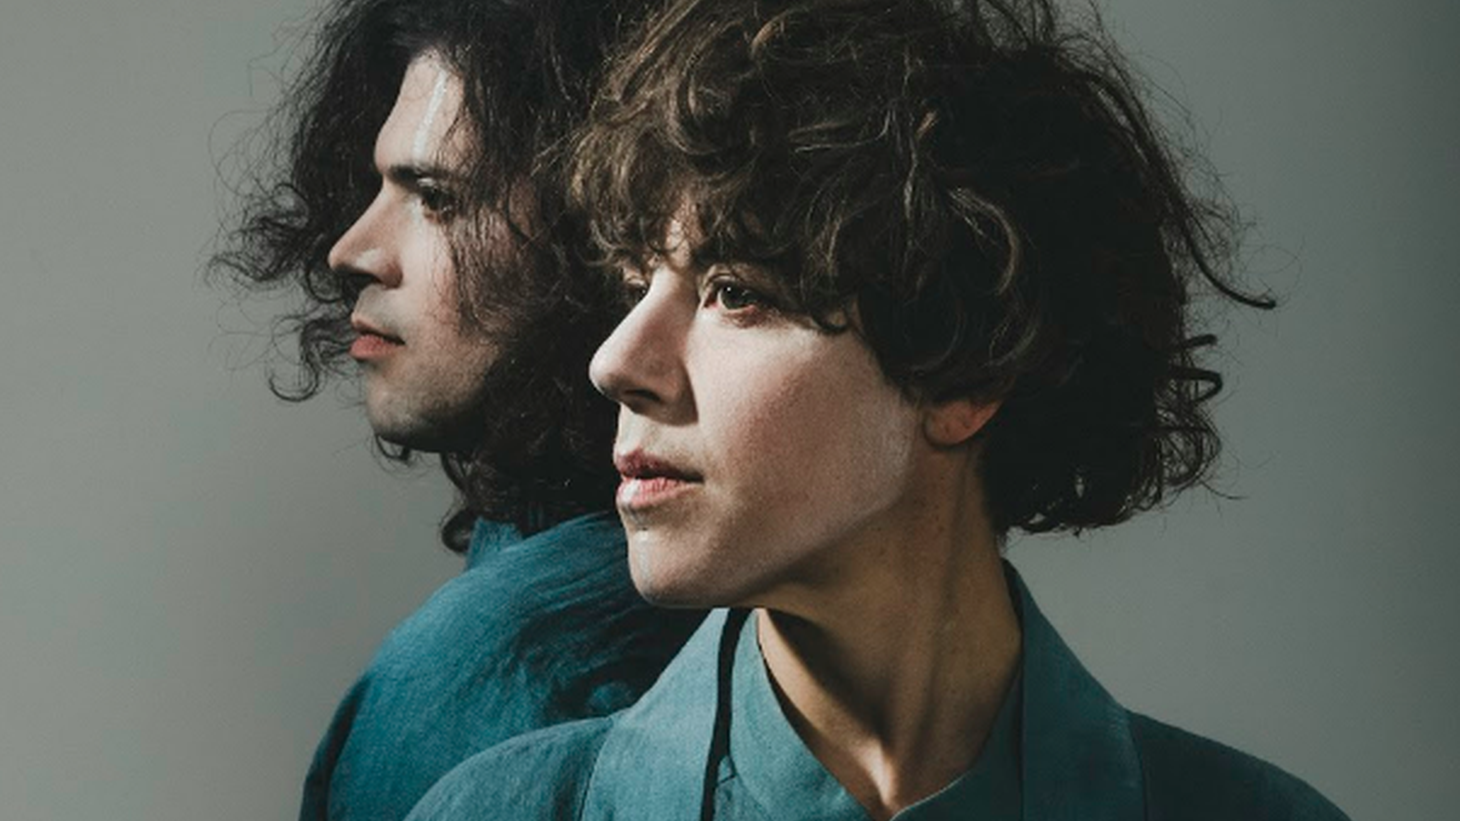 For the 4th Tune-Yards full length album I can feel you creep into my private life, bandleader Merrill Garbus turned to her longtime bass player Nate Brenner as her producing partner.